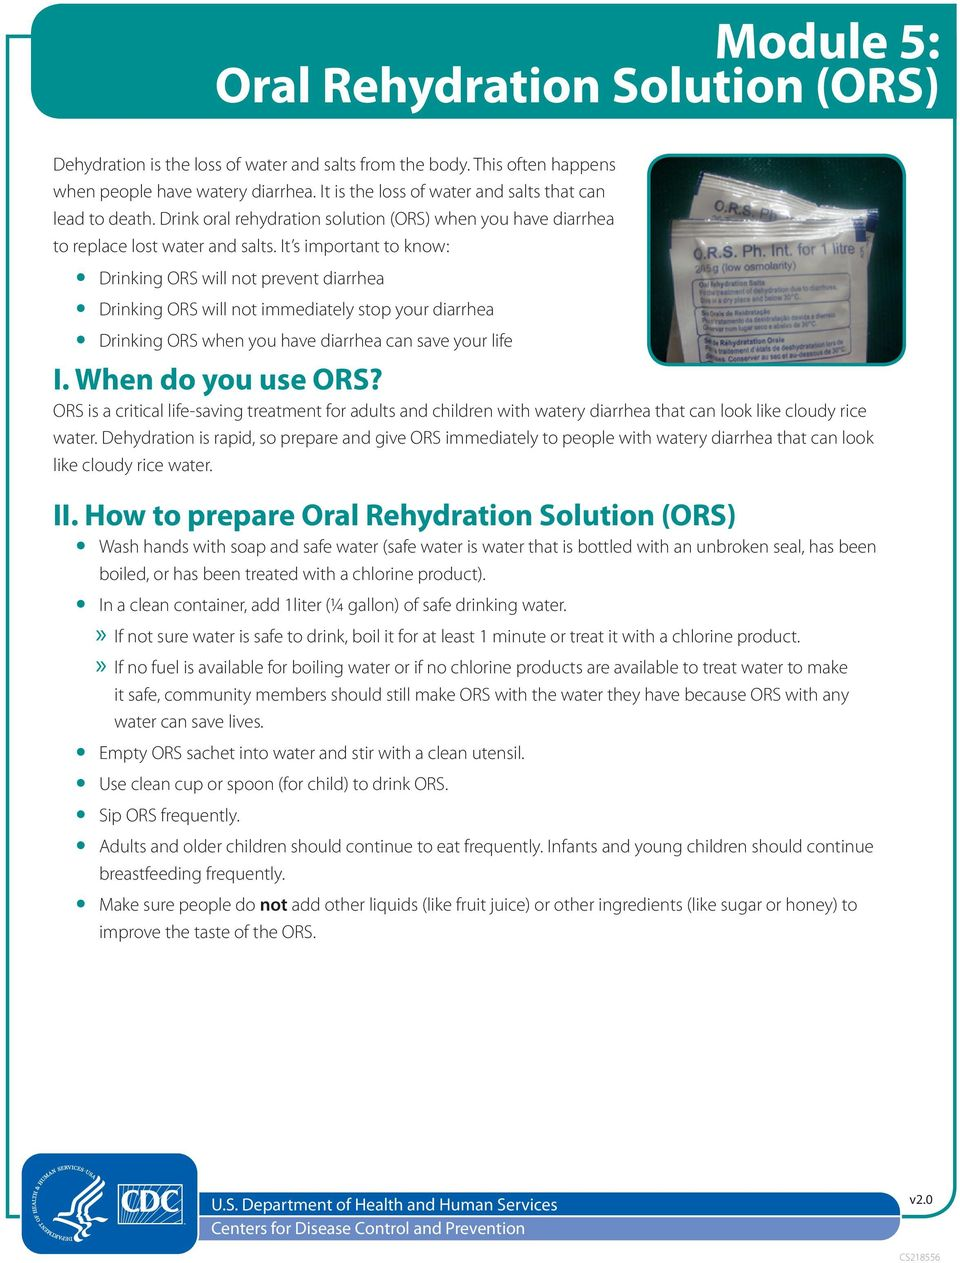 It s important to know: Drinking ORS will not prevent diarrhea Drinking ORS will not immediately stop your diarrhea Drinking ORS when you have diarrhea can save your life I. When do you use ORS?